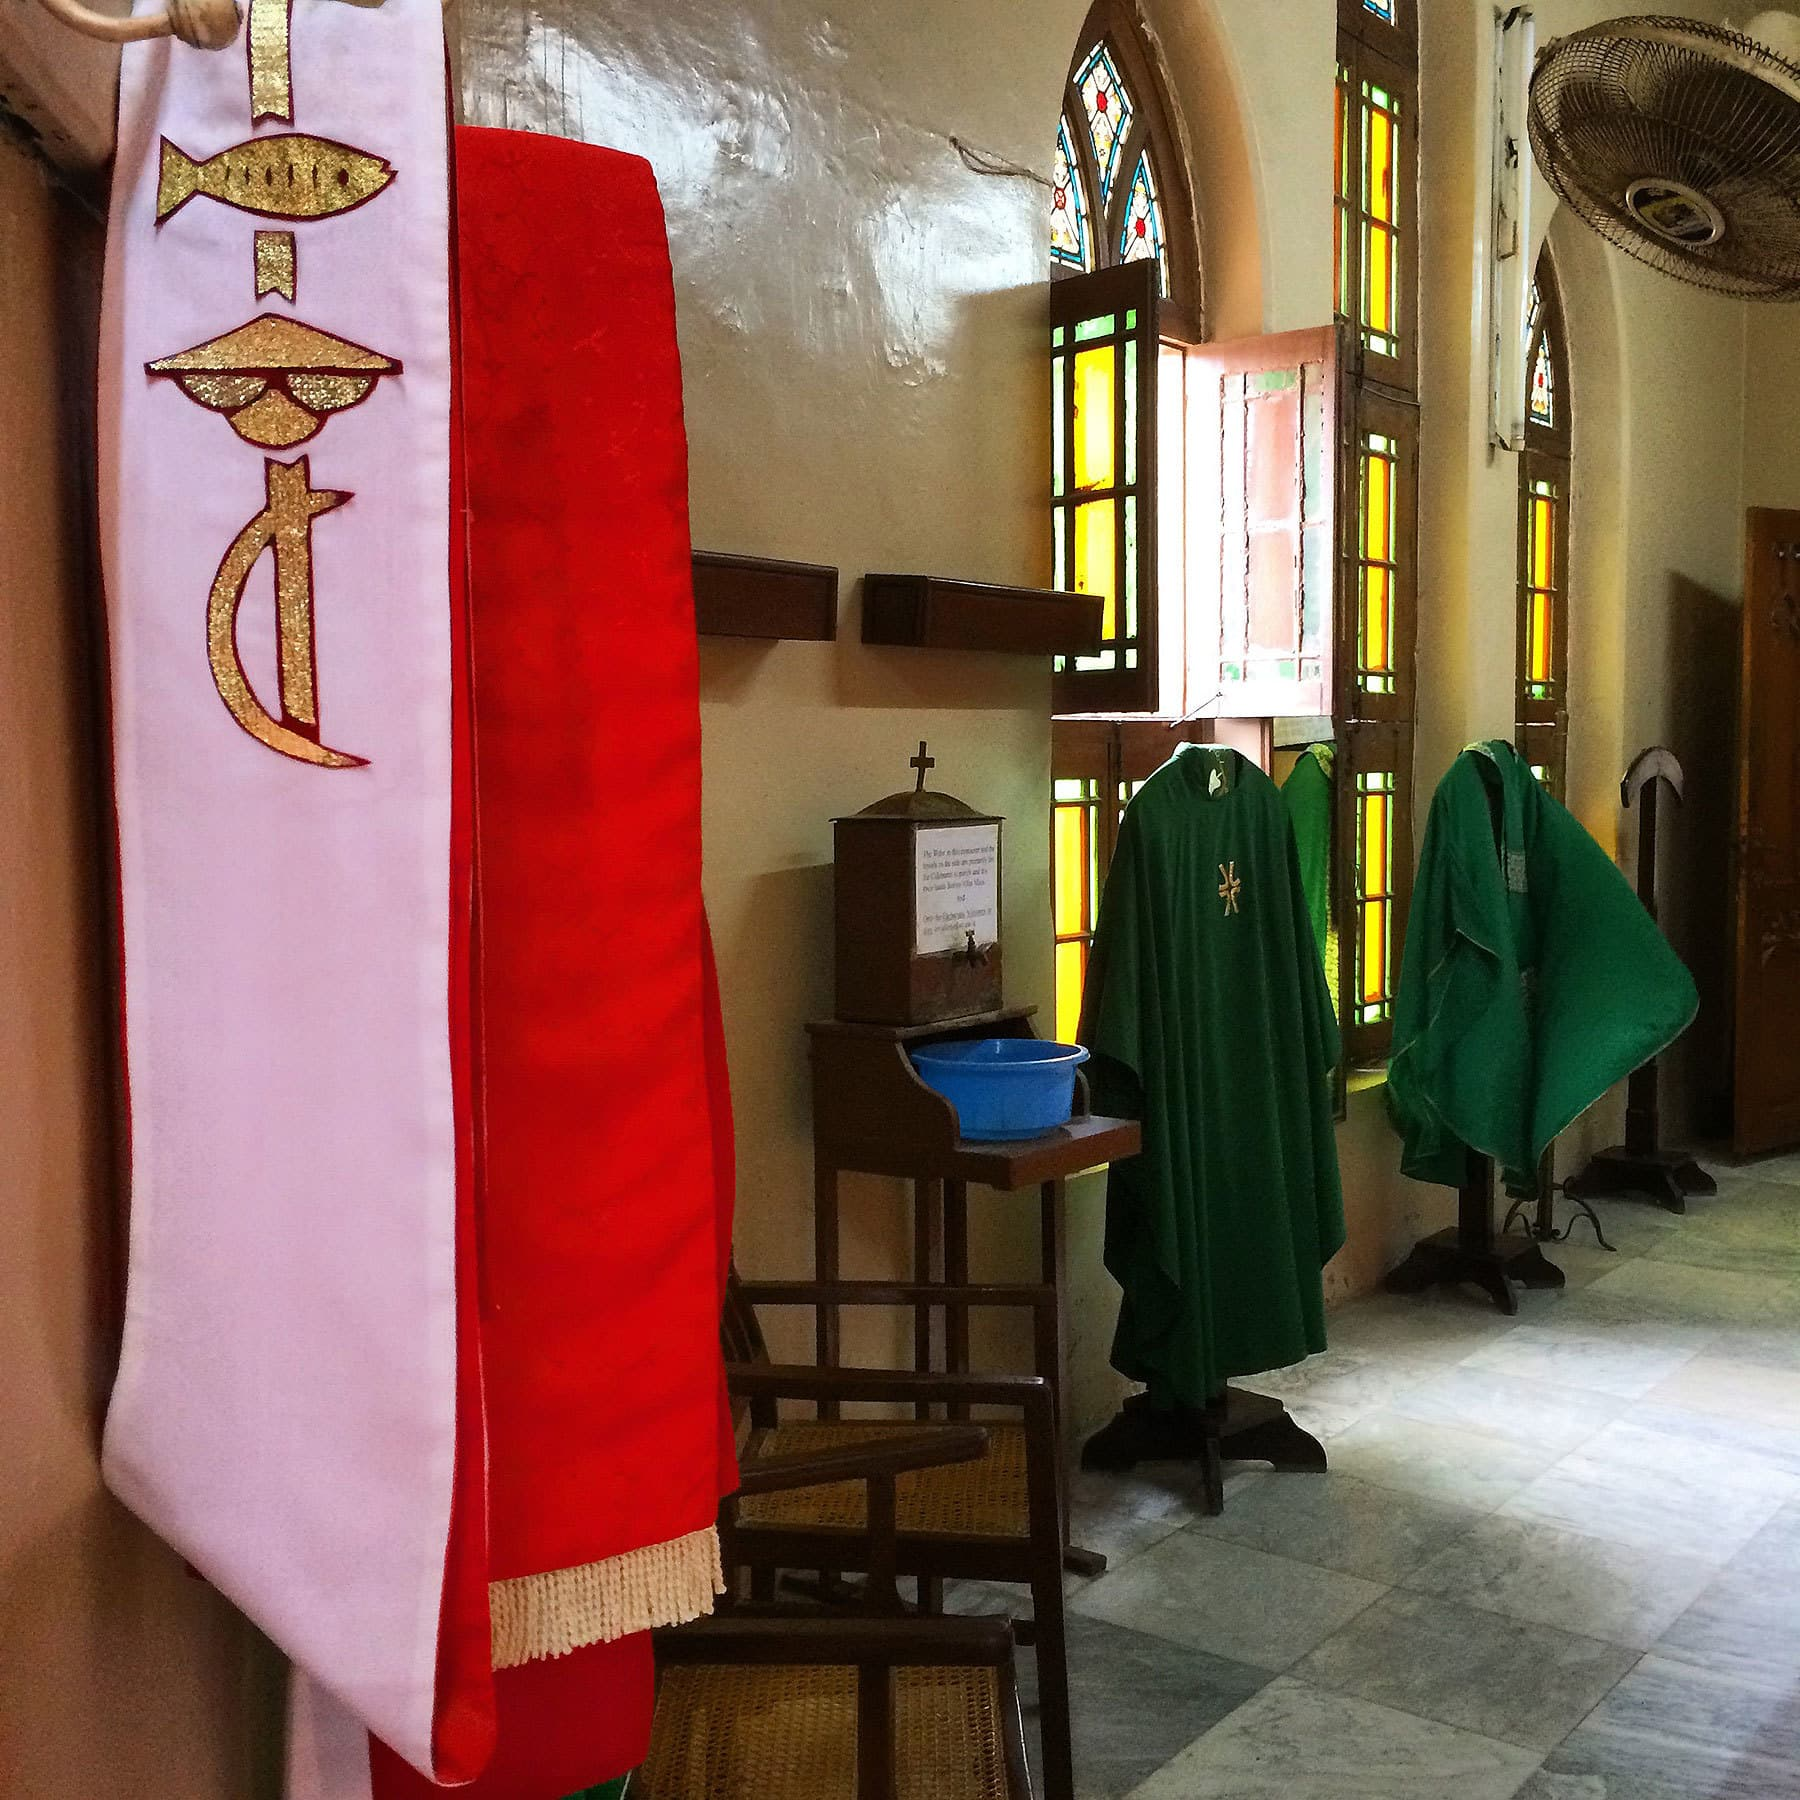 Changing area for the altar boys and people in the Church choir.